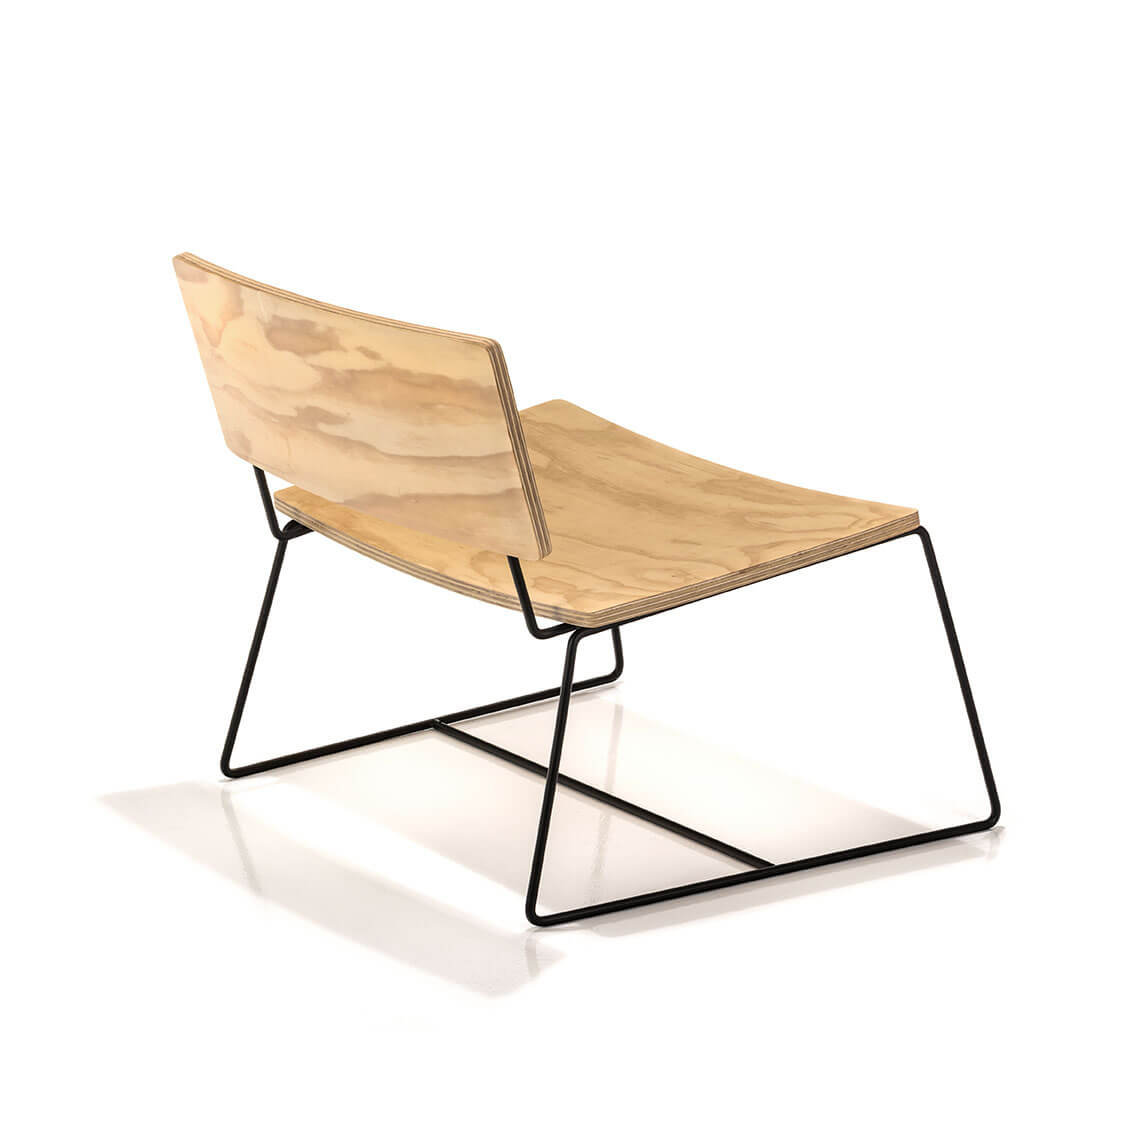 SK8 Lounge Chair